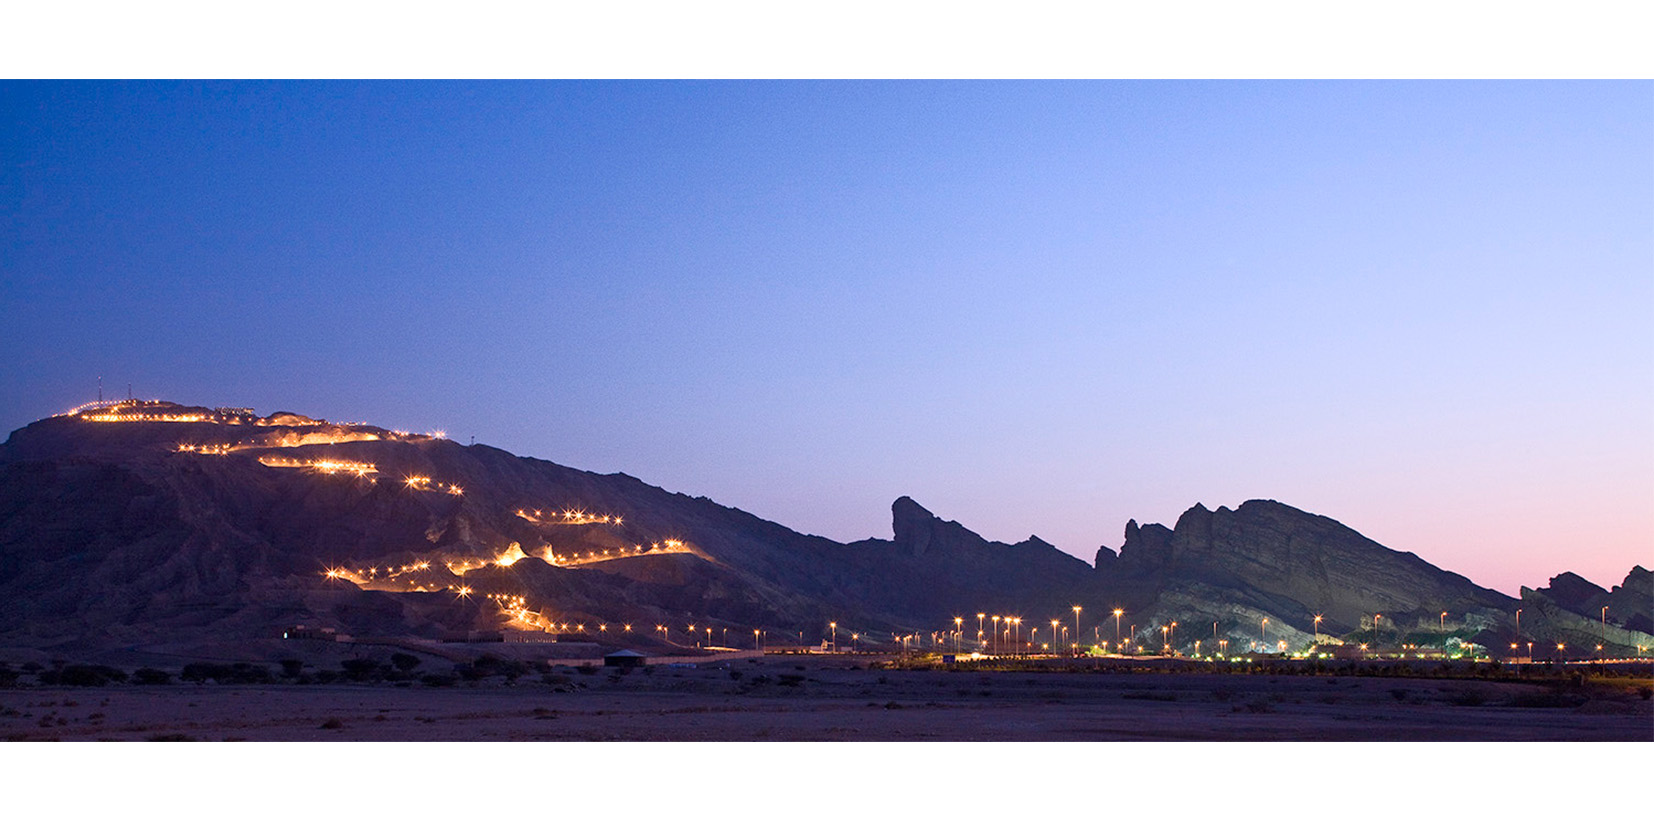 Night View Jebel Hafeet